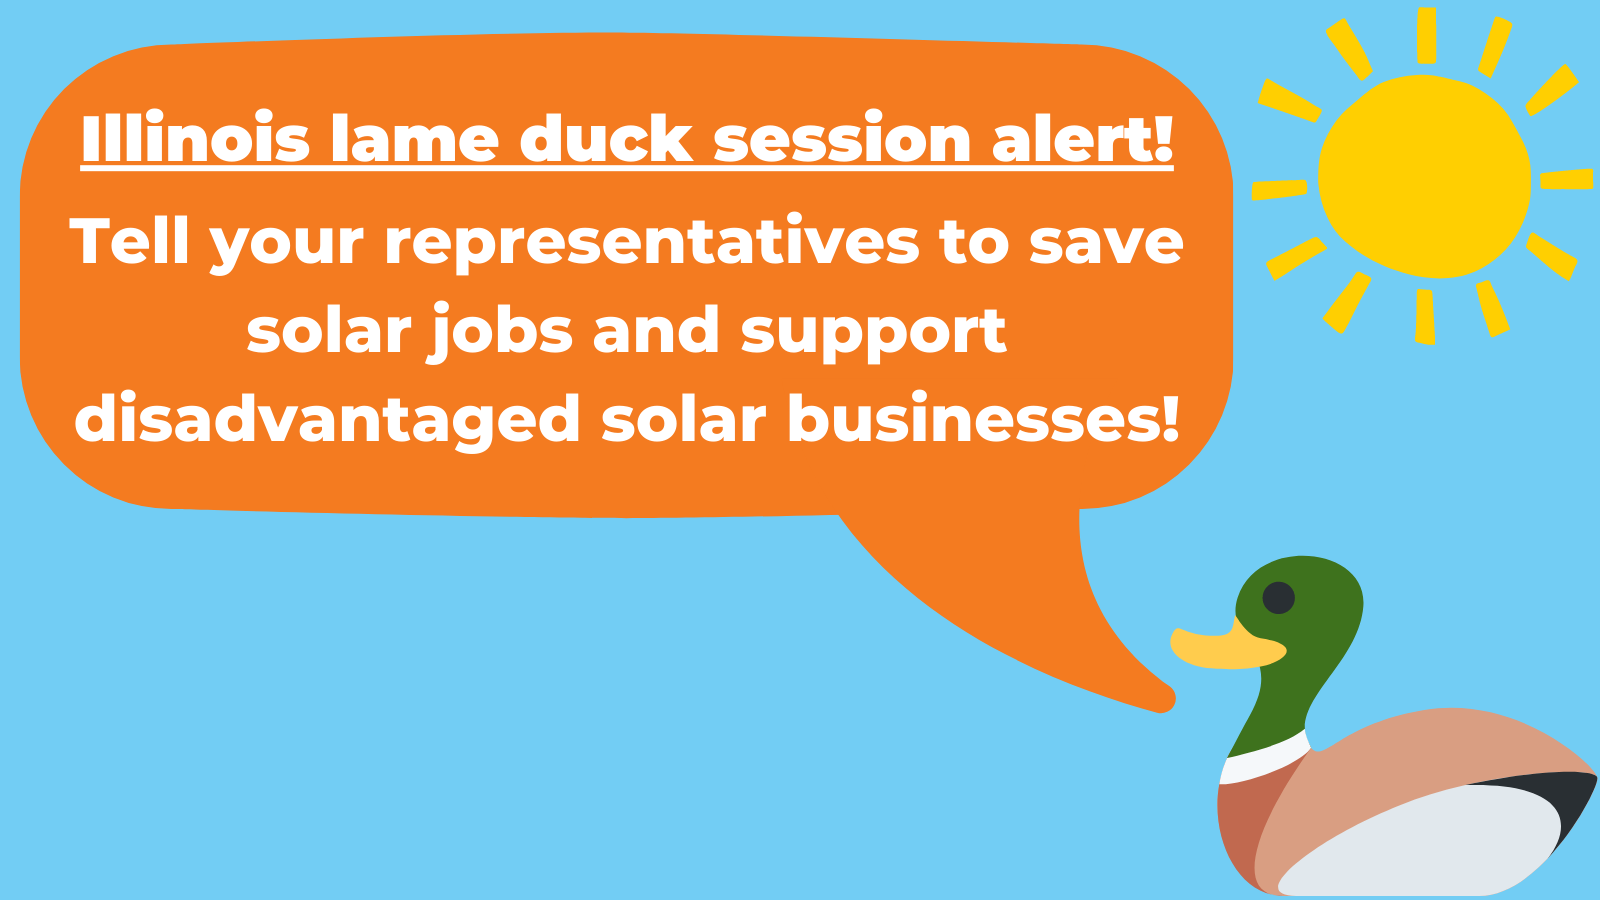 Illinois' Lame Duck Session is Opportunity to Save Solar, Invest Equitably